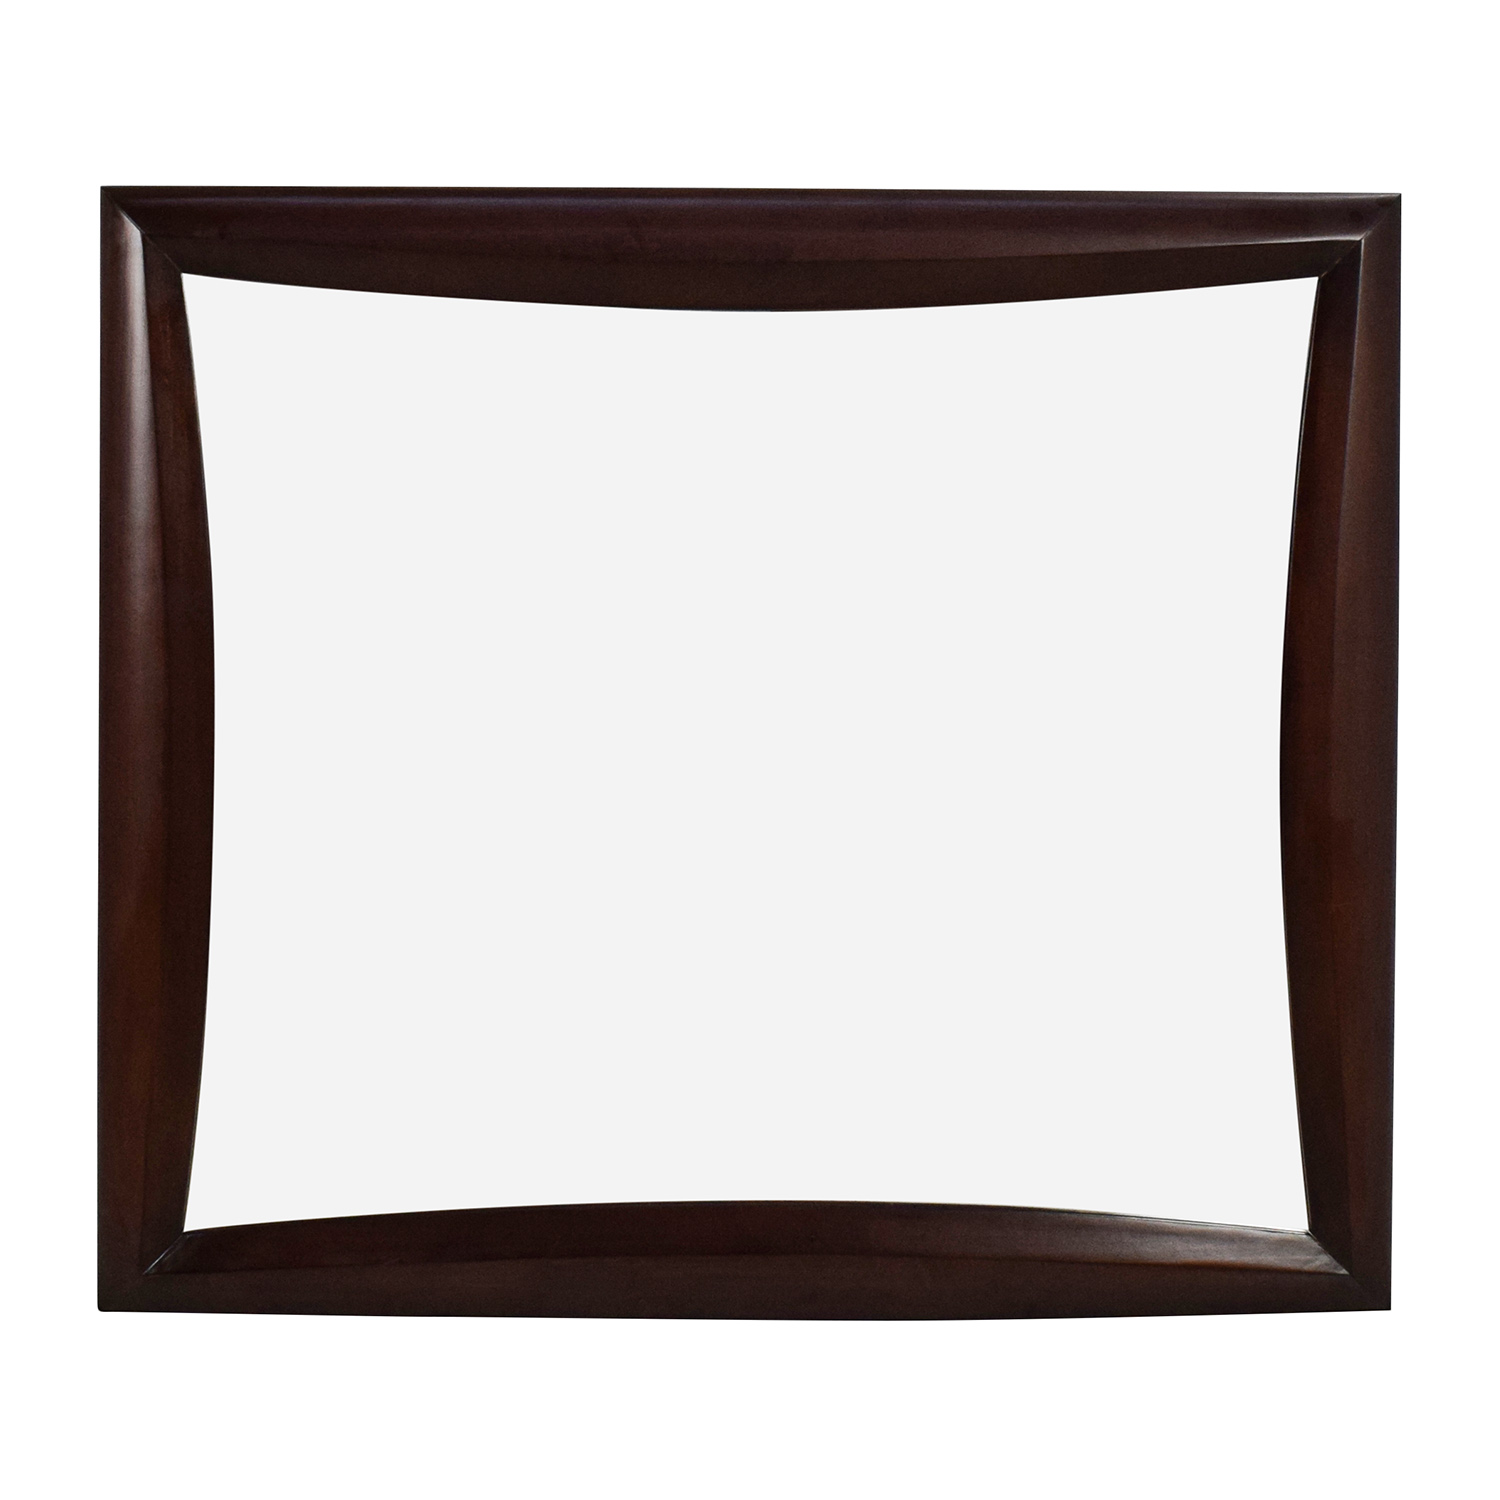 80 off square curved wooden frame mirror decor for Square mirror